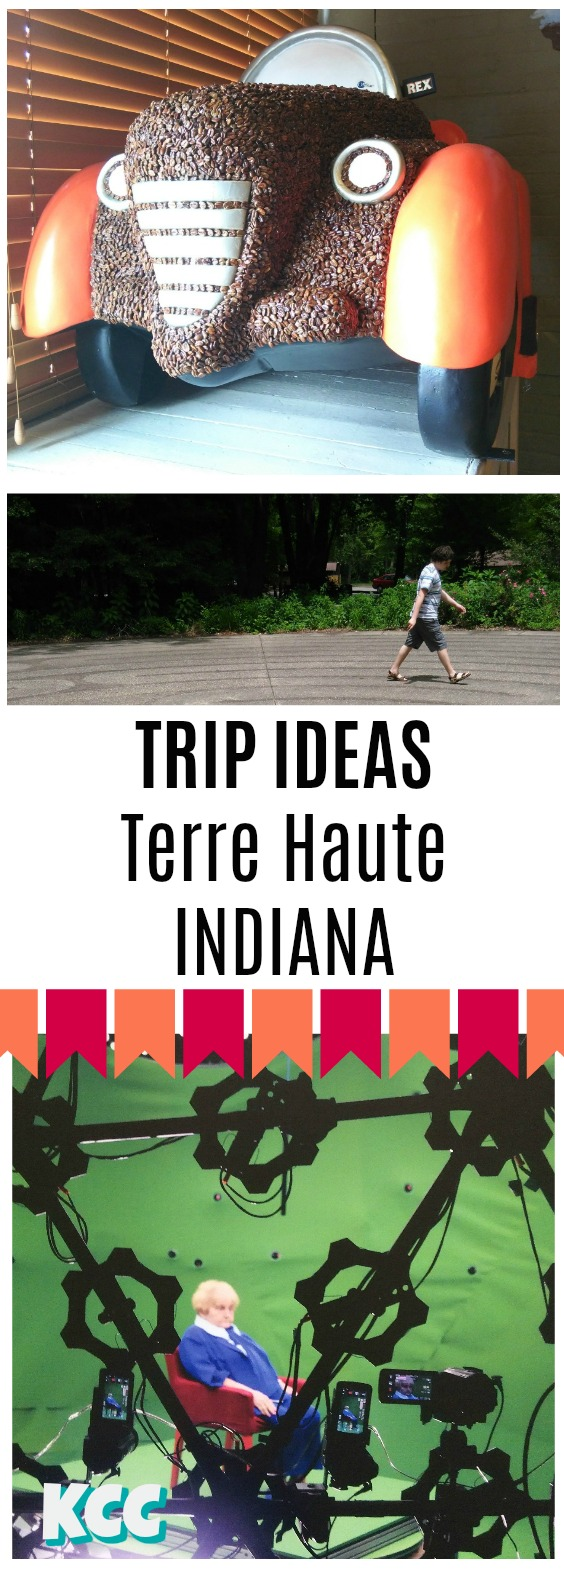 Field Trip or Vacation Things to Do in Terre Haute